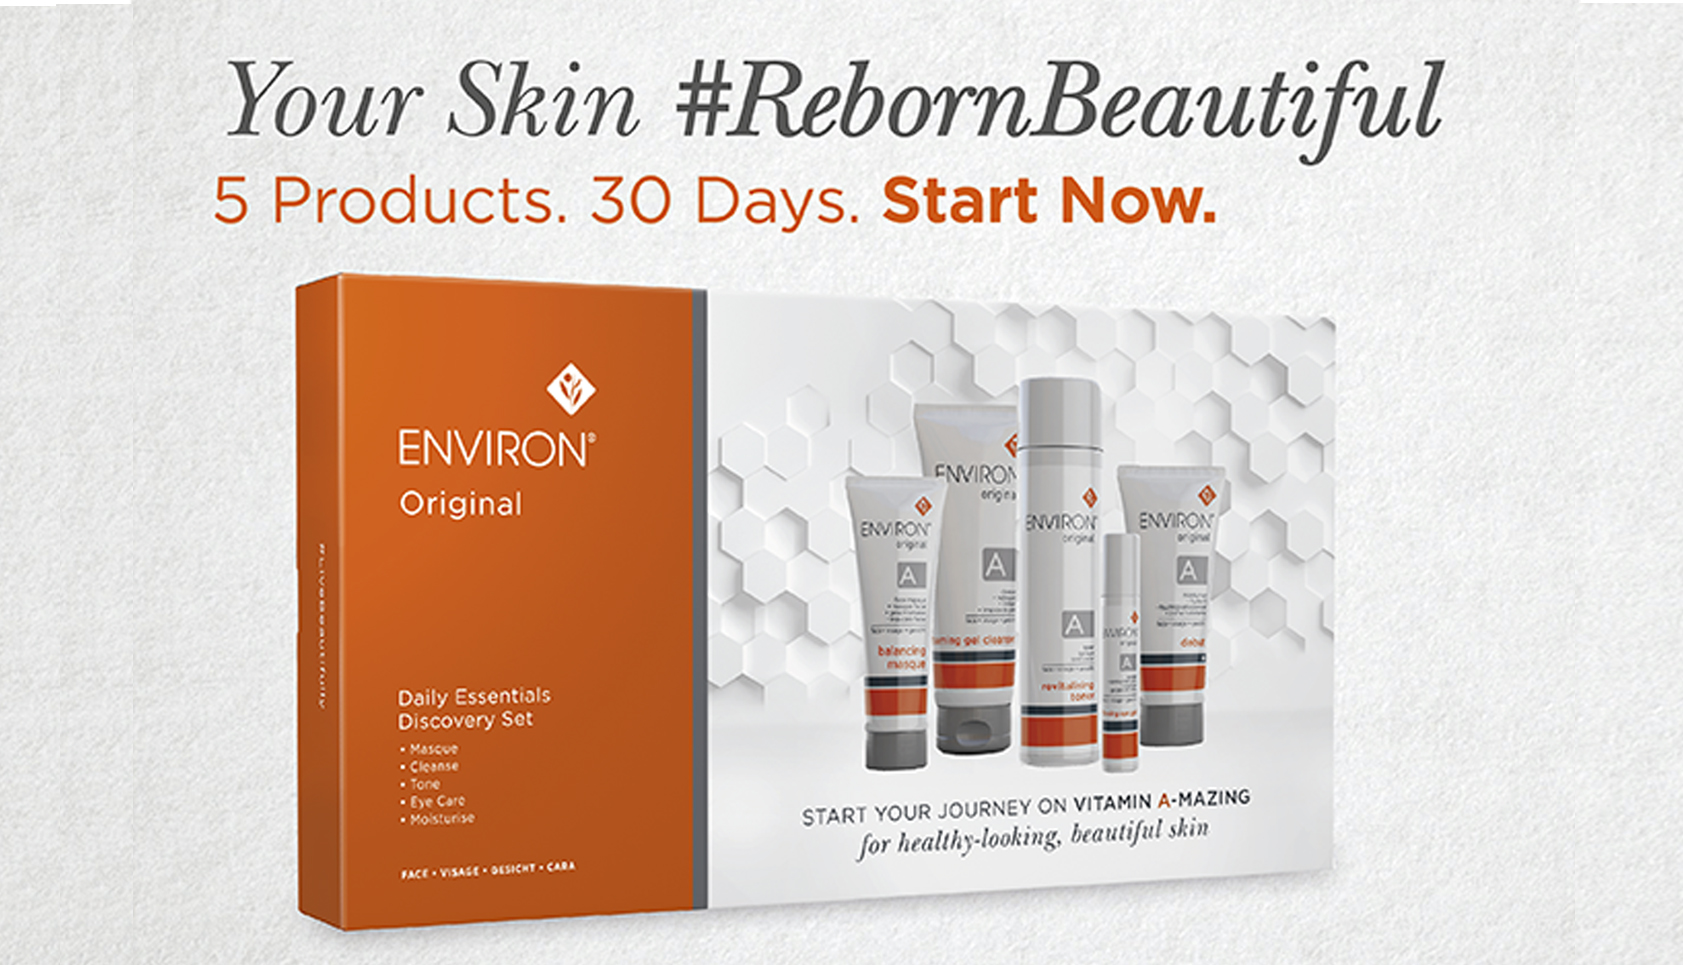 Bring-your-skin-back-to-beautiful-Original-Discovery-Promo-here-Environ-Skin-Care